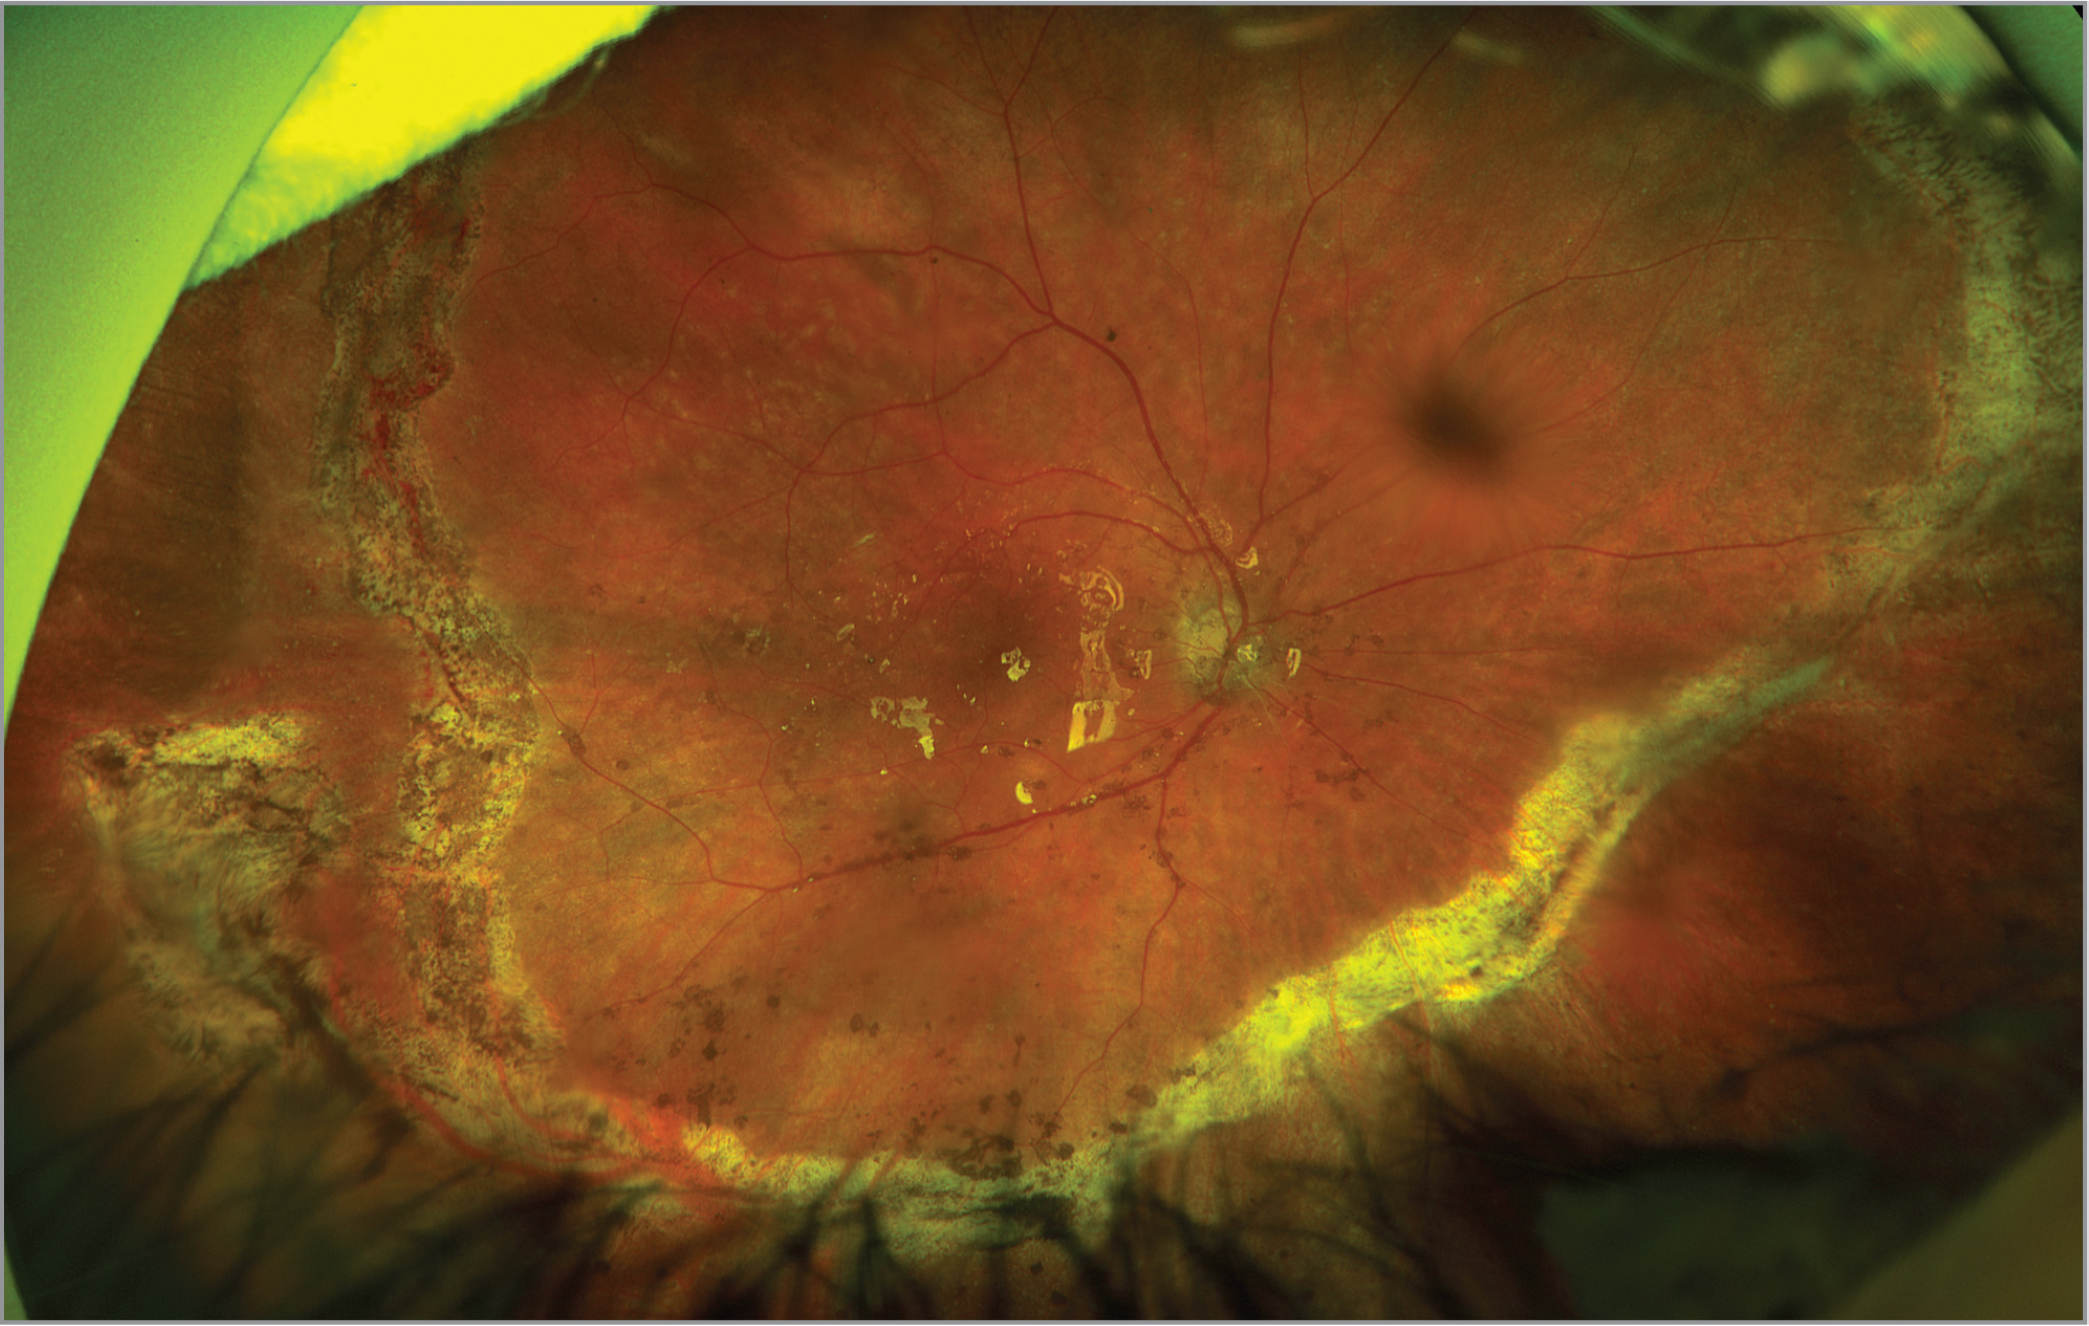 Widefield fundus photo following extension of the retinectomy temporally. The preretinal pigment deposits have improved following surgery.